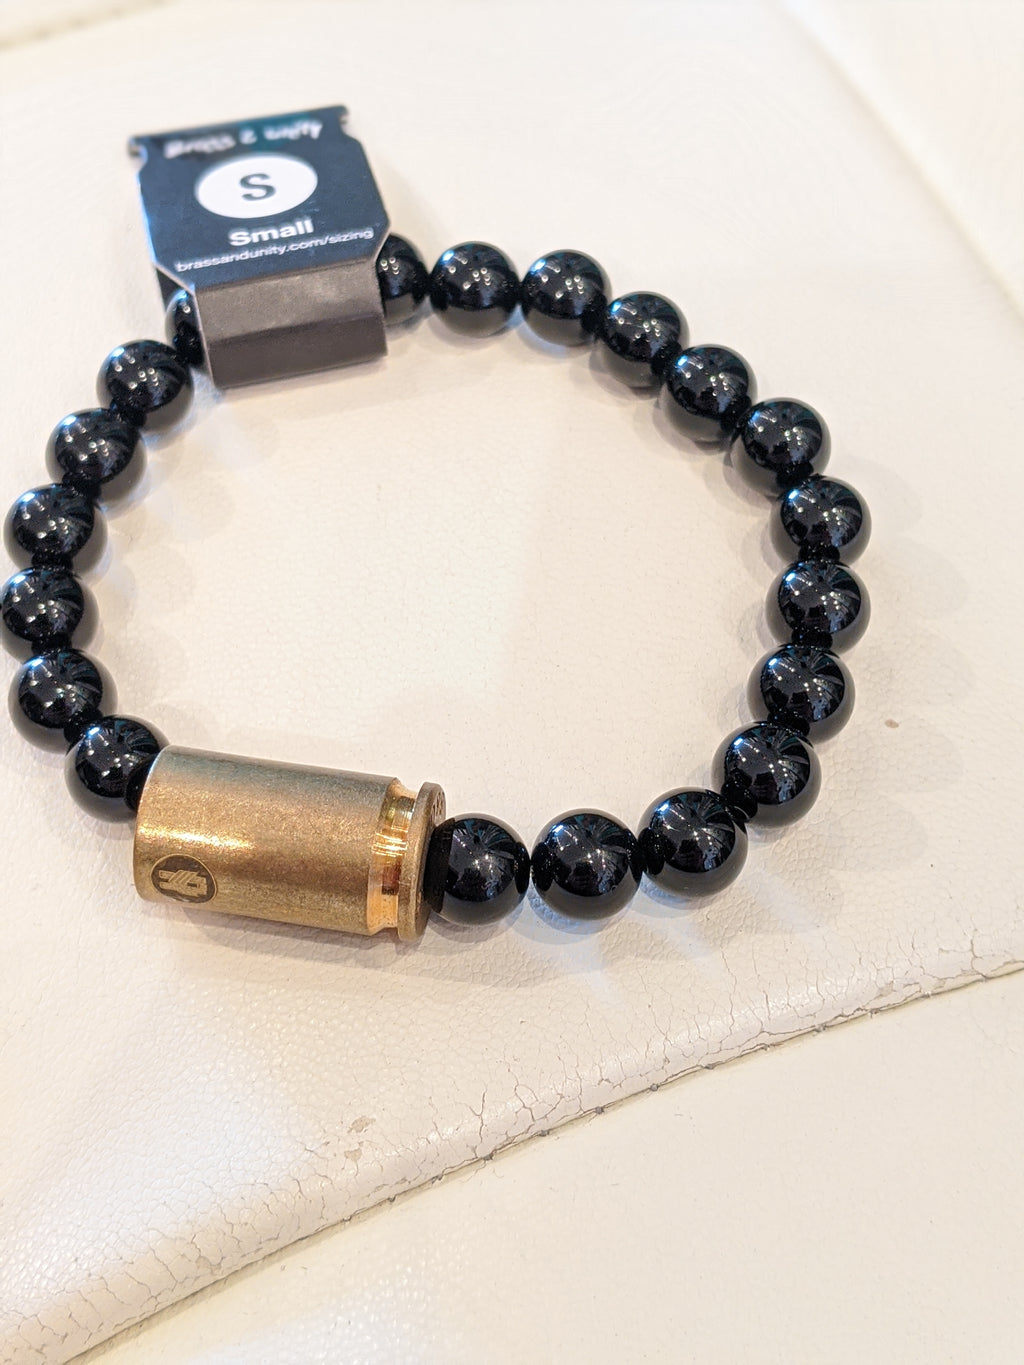 Black Lava Warrior bracelet - Sonia's Runway